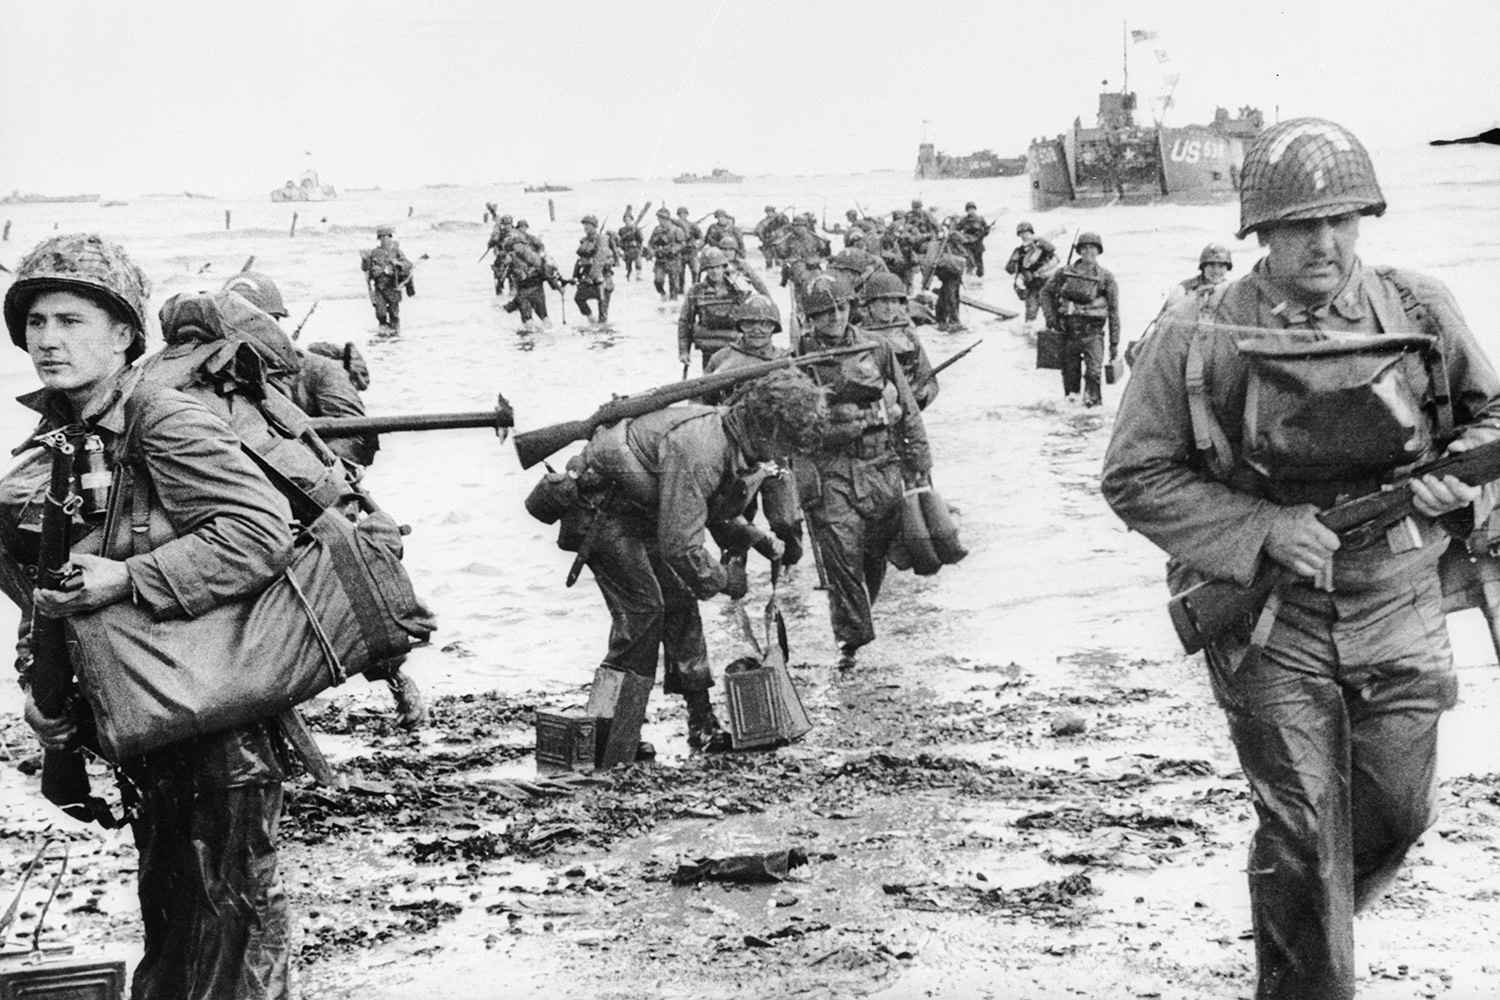 Troops landing in Normandy on D-Day